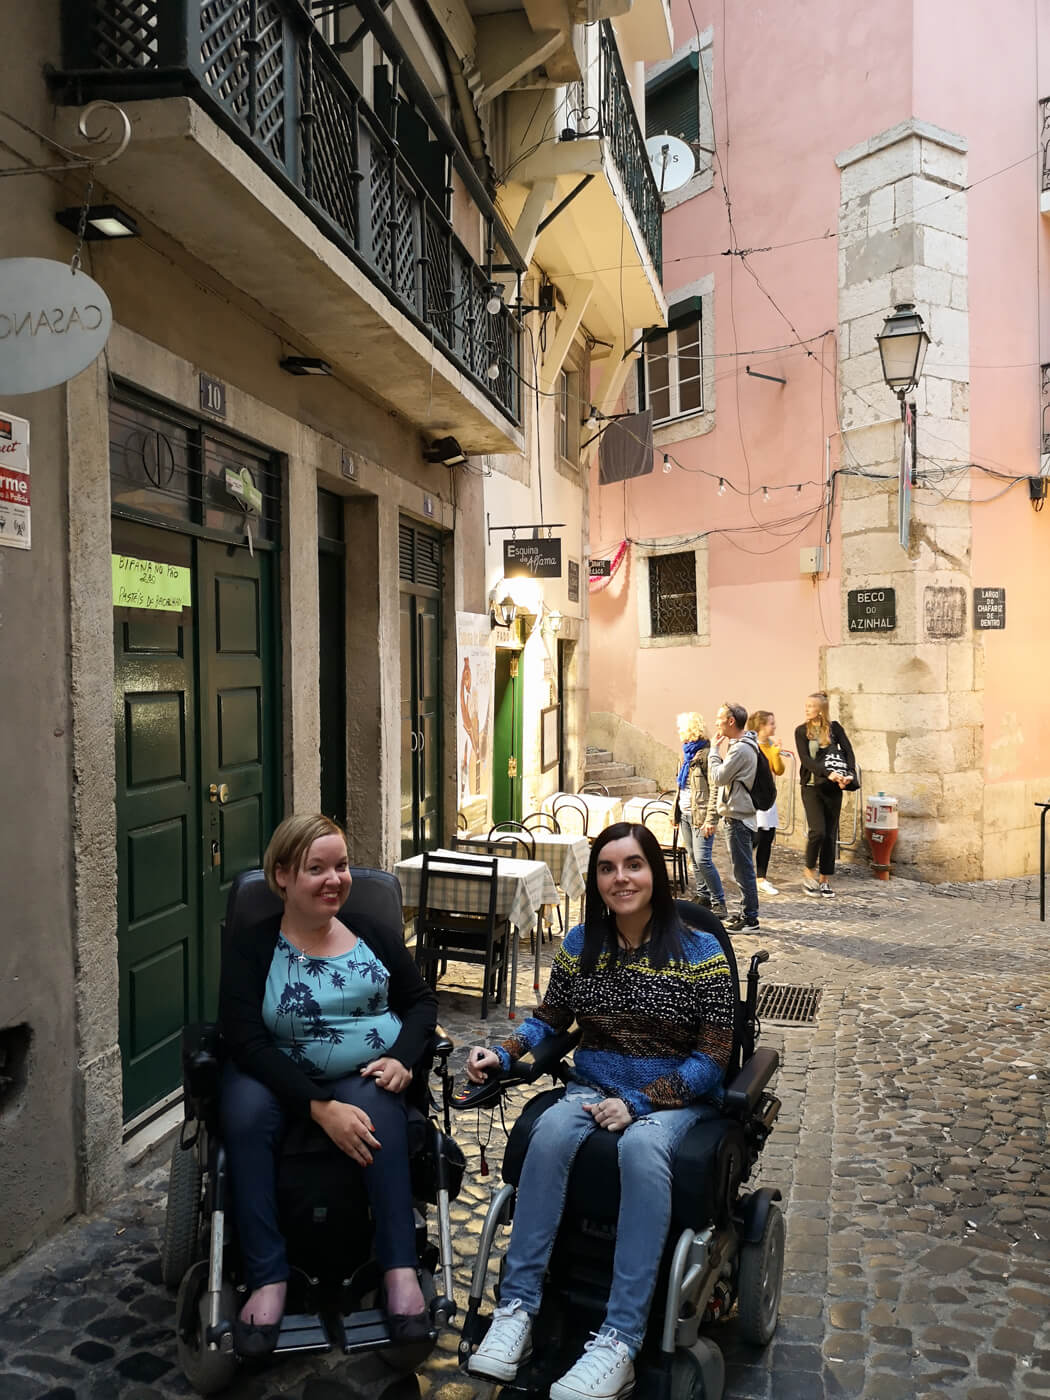 Emma and fellow wheelchair user Sanna sitting next to each other in the old town Alfama district Lisbon. Behind them is a pink old building and outdoor dining seating.